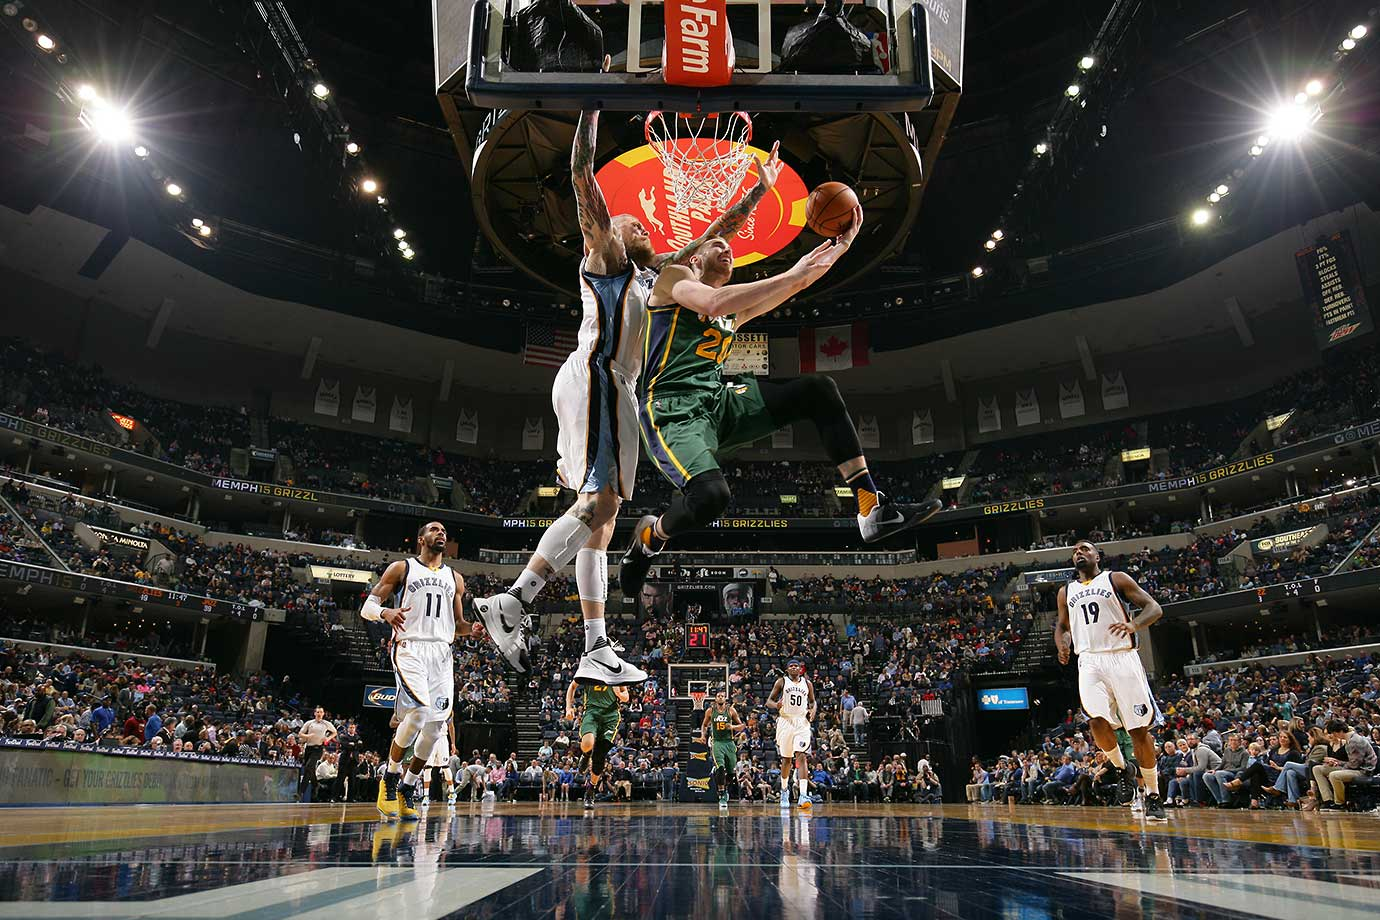 Gordon Hayward of the Utah Jazz shoots the ball against the Memphis Grizzlies.